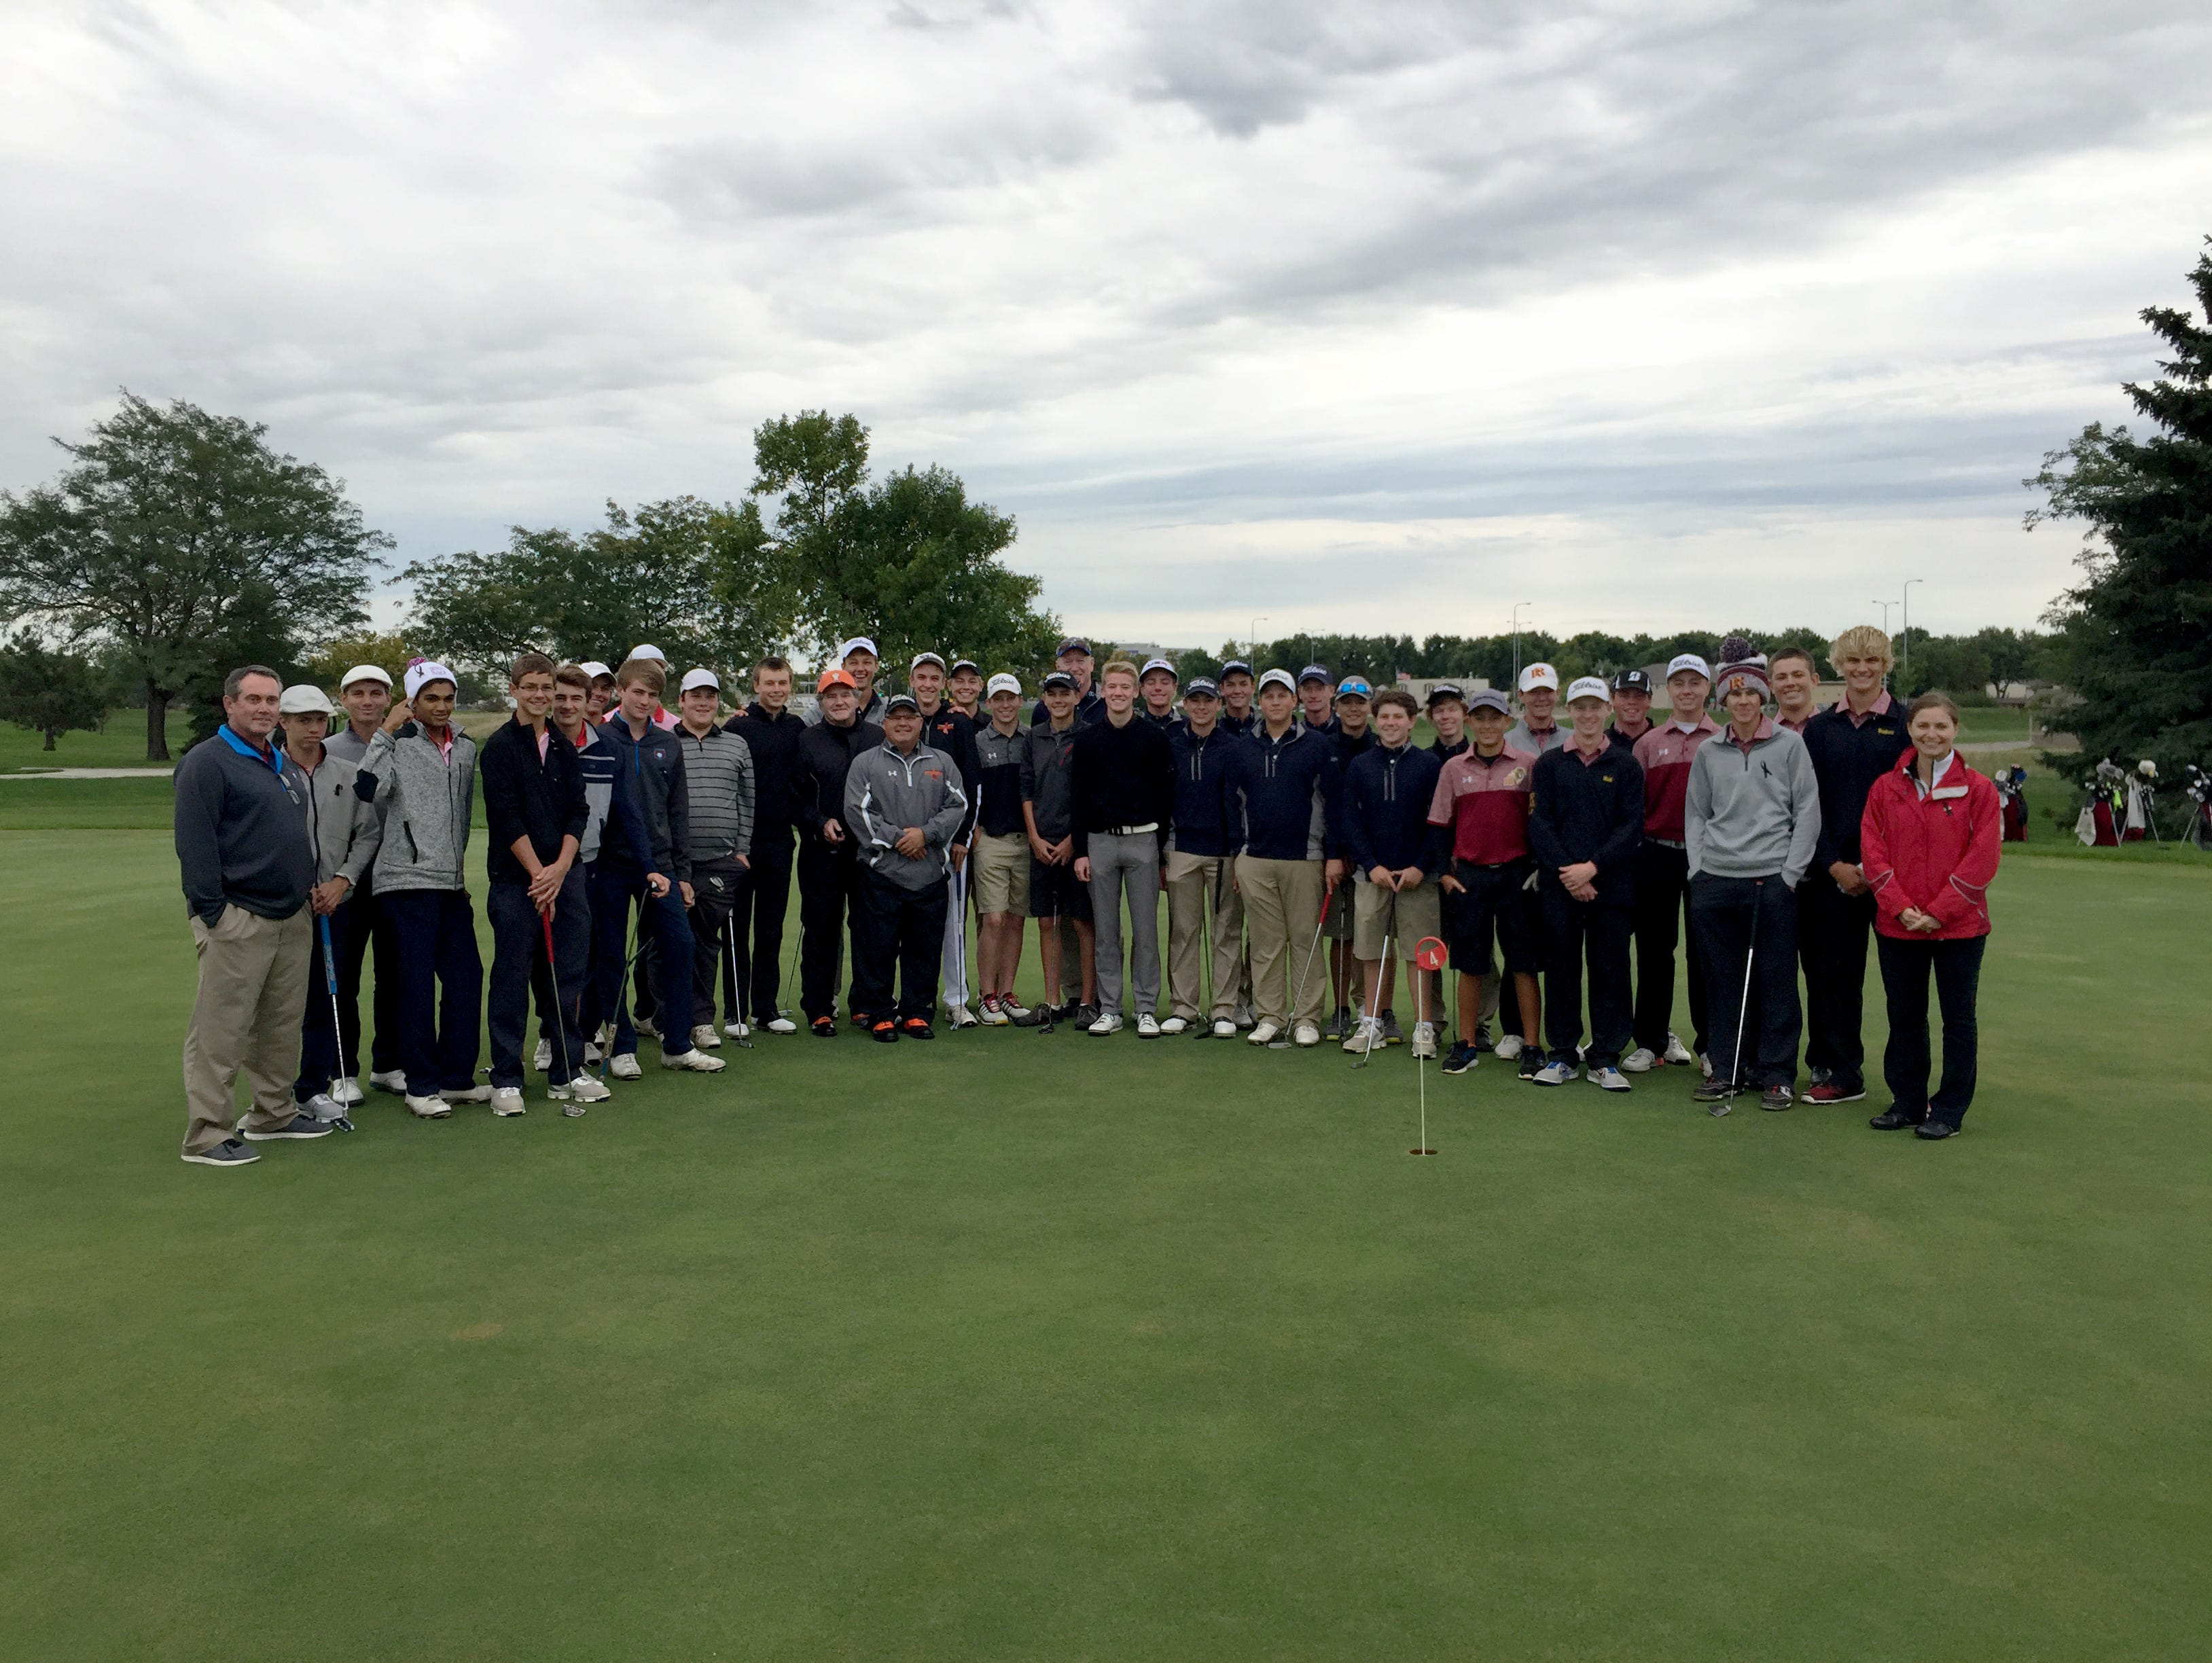 Golfers from O'Gorman, Washington, Lincoln and Roosevelt pose for a picture with former Washington assistant golf coach Ken Martens prior to the start of the second round of the Boys City Golf Meet at Elmwood Golf Course on Tuesday, Sept. 13.